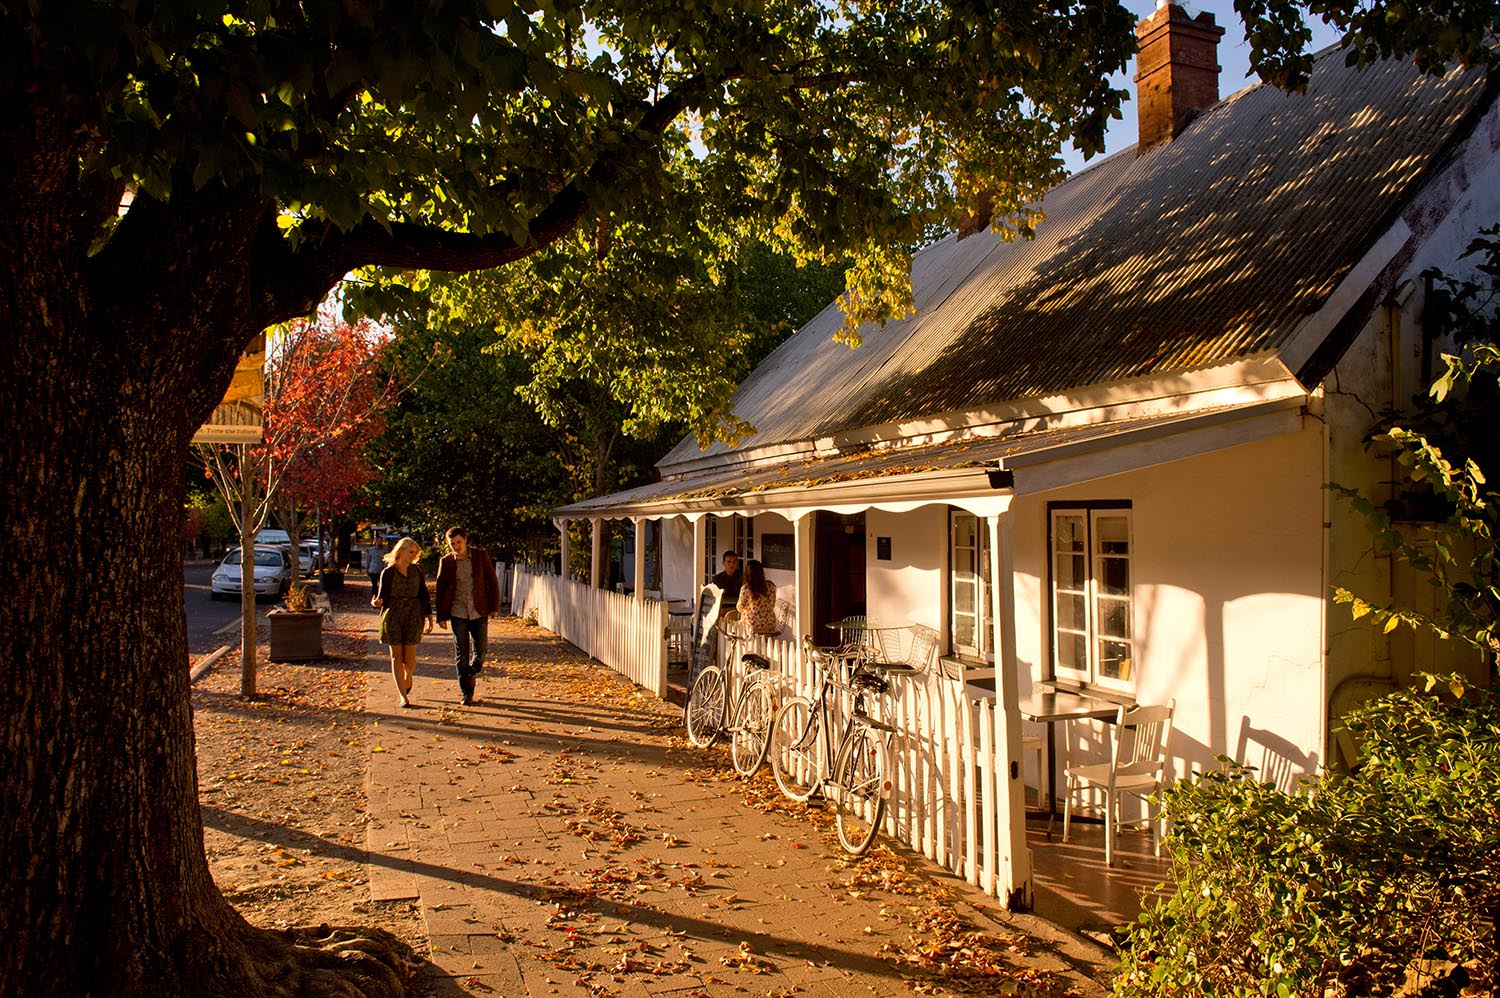 The White House Hahndorf, South Australian Tourism Commission